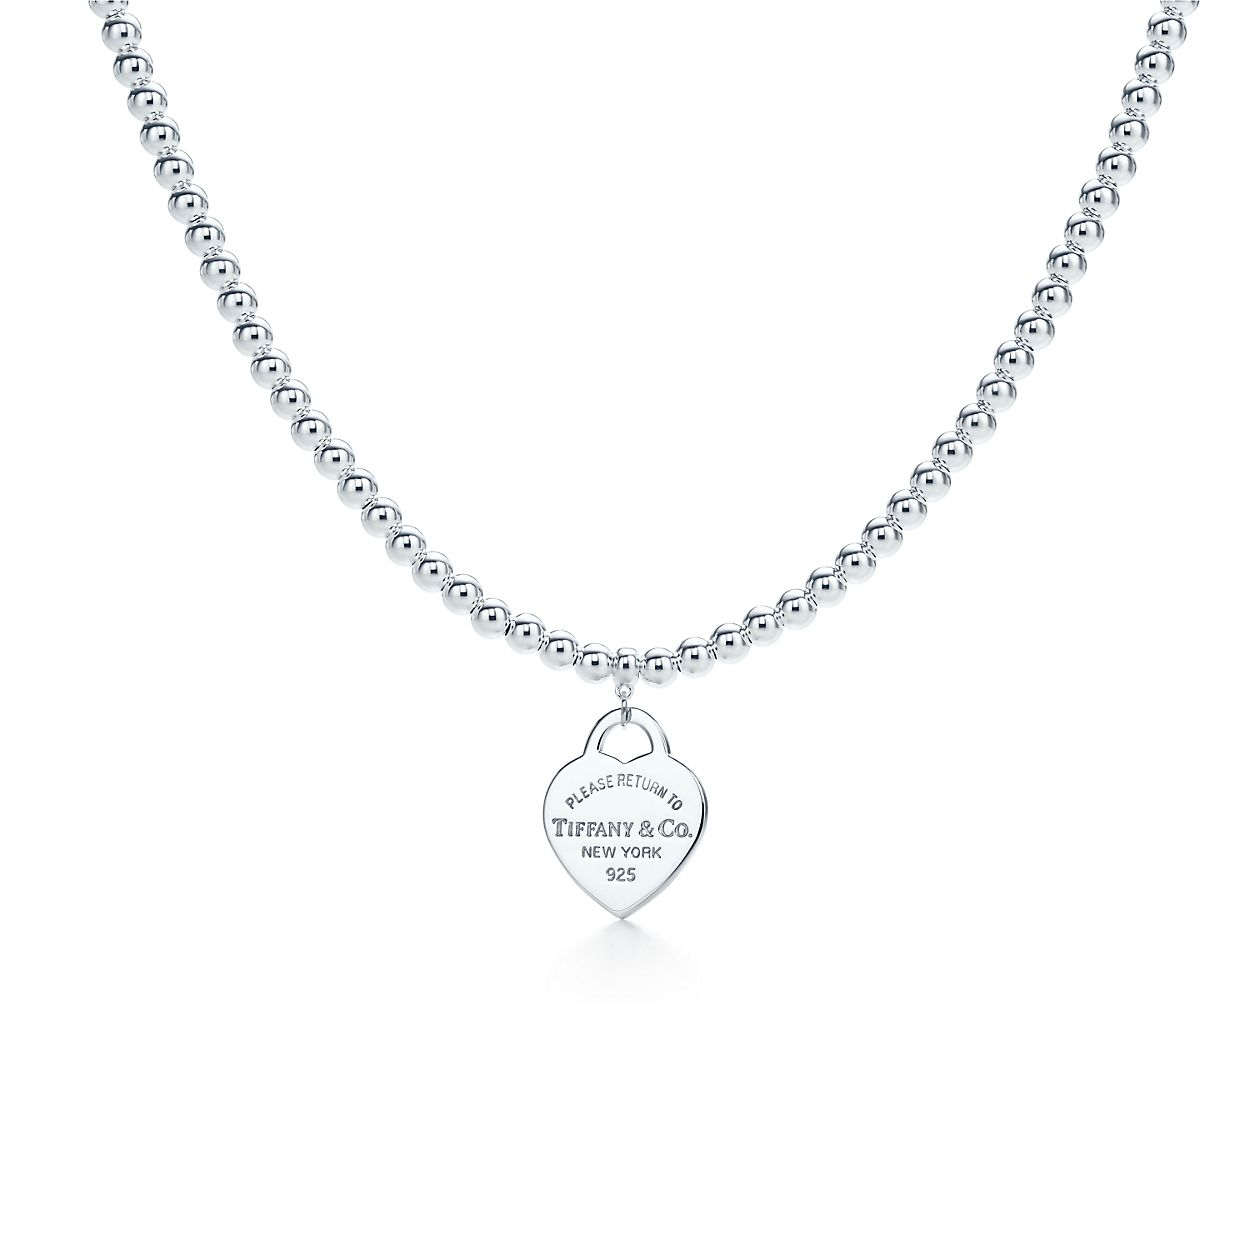 Return to Tiffany small heart tag in sterling silver on a bead necklace - Size 18 in Tiffany & Co. uMUhN2nm5o